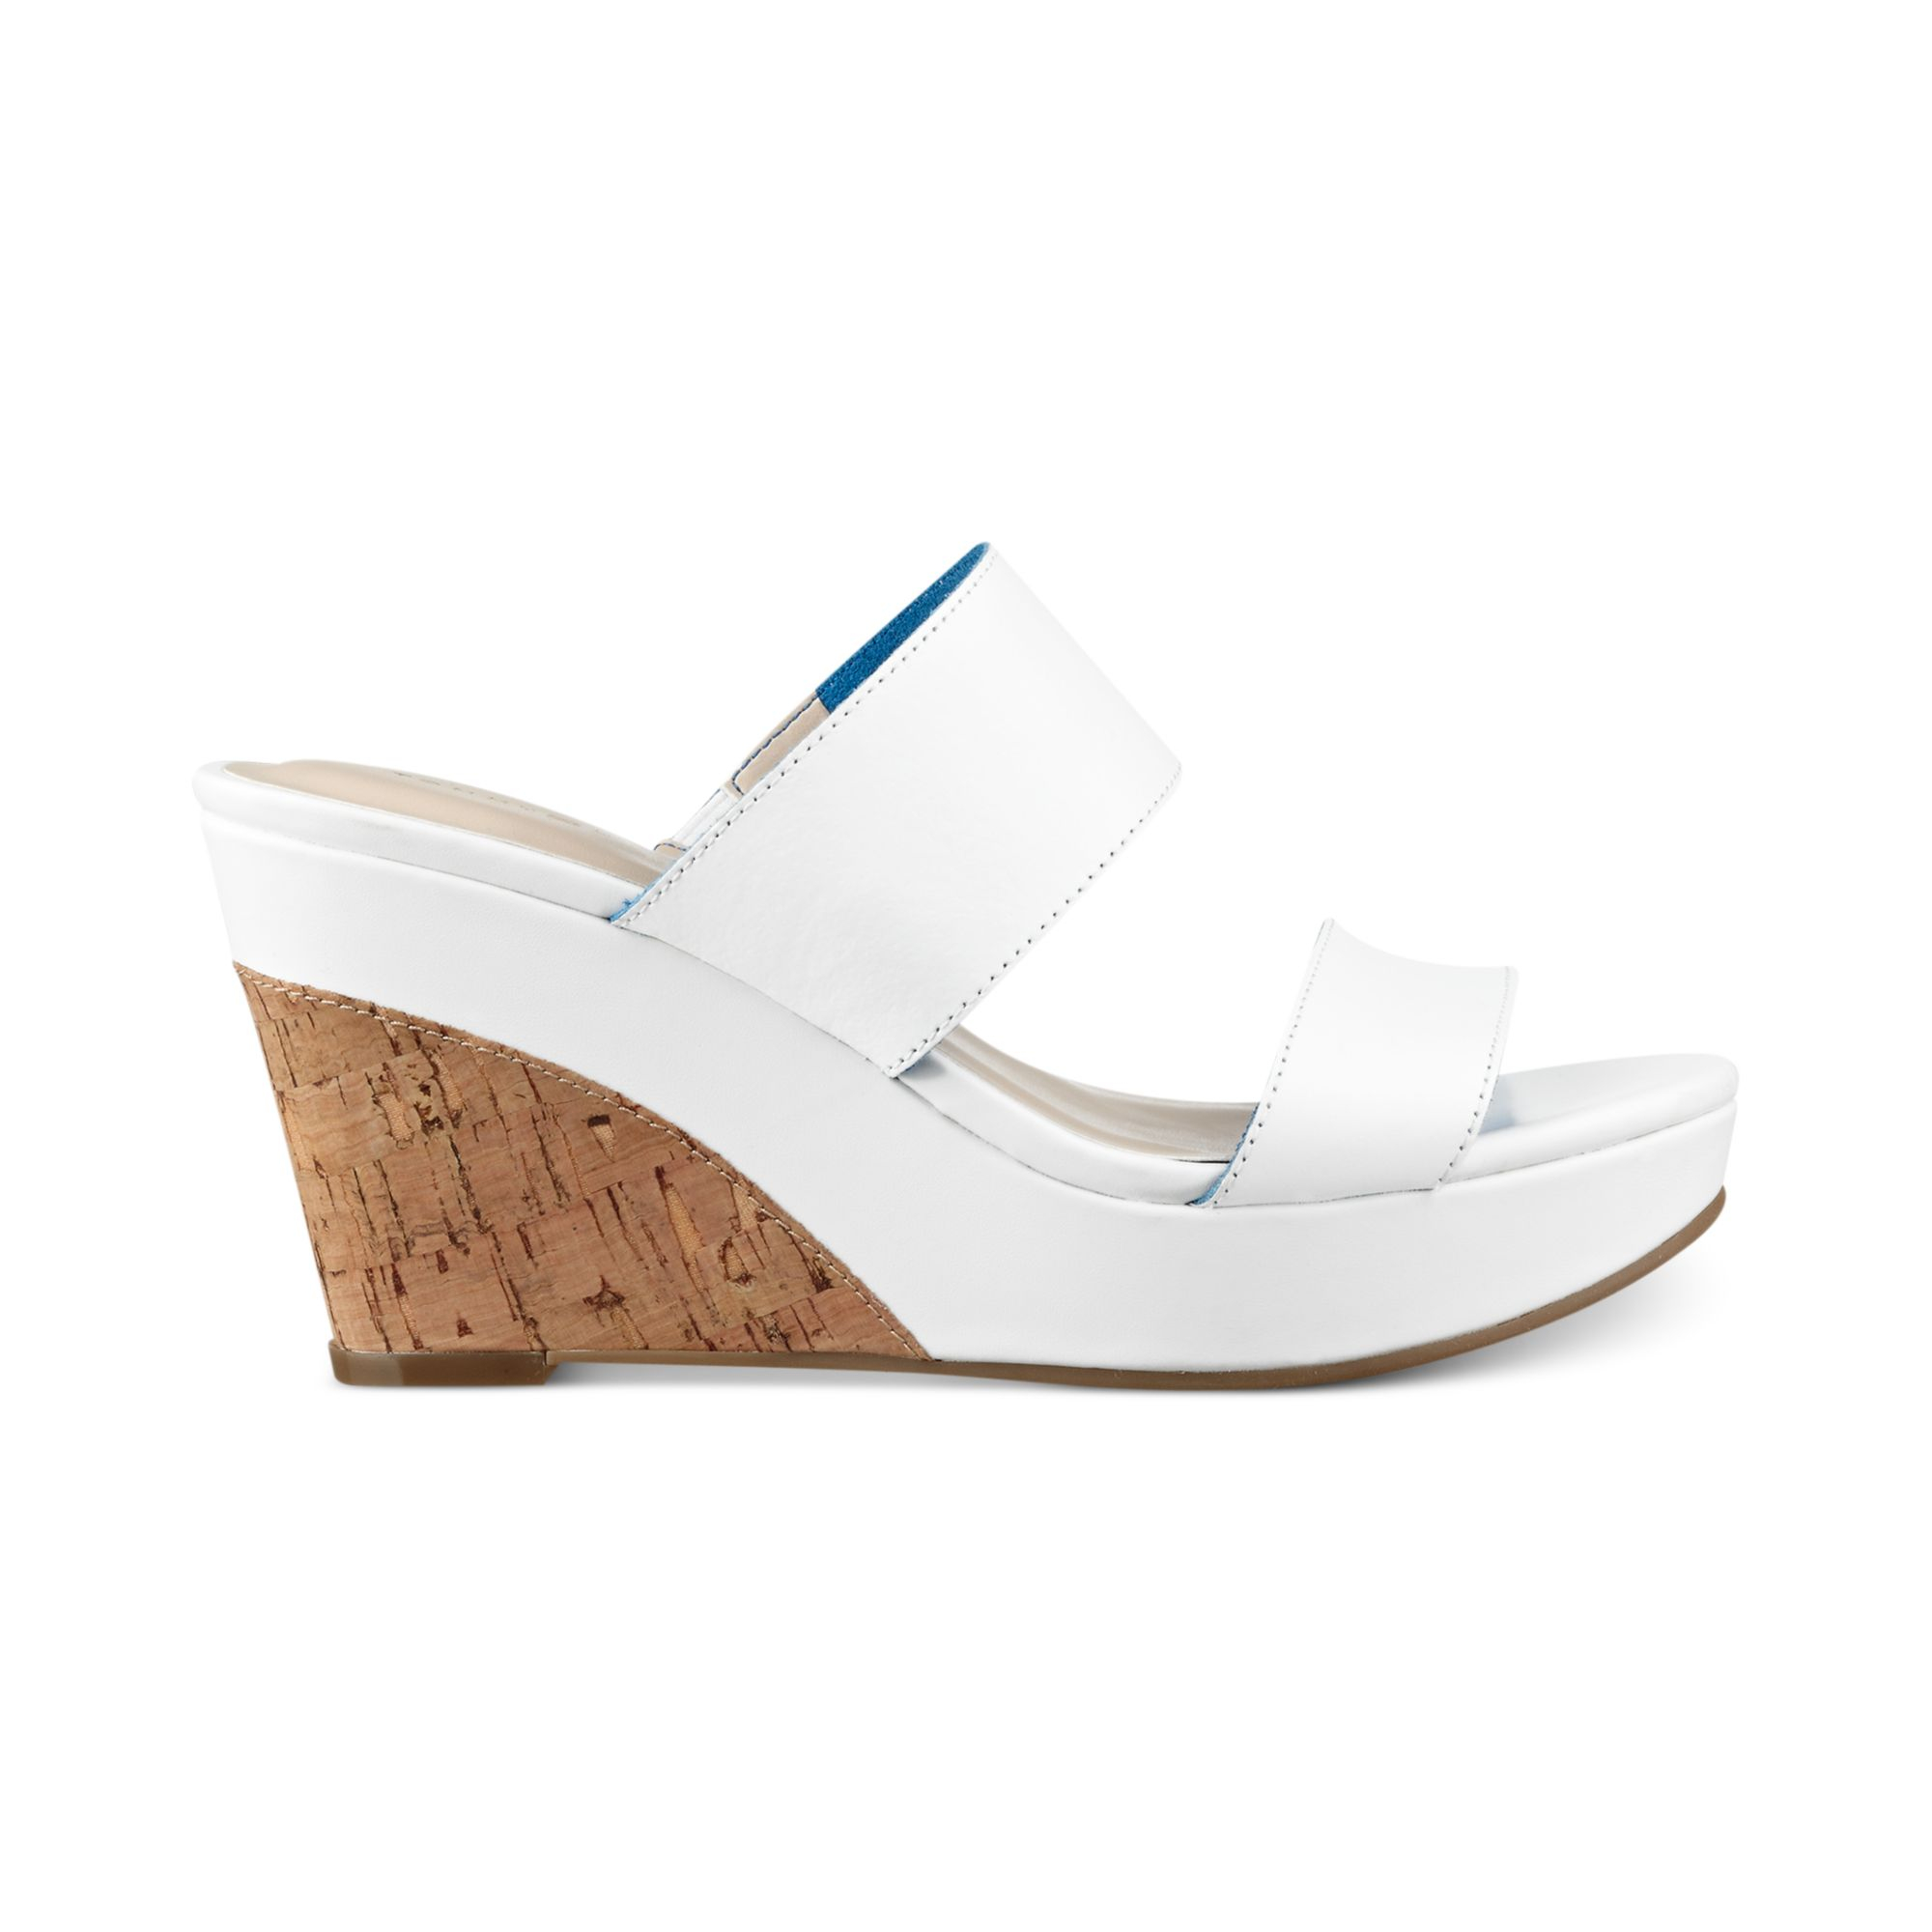 hilfiger kadine platform wedge sandals in white lyst